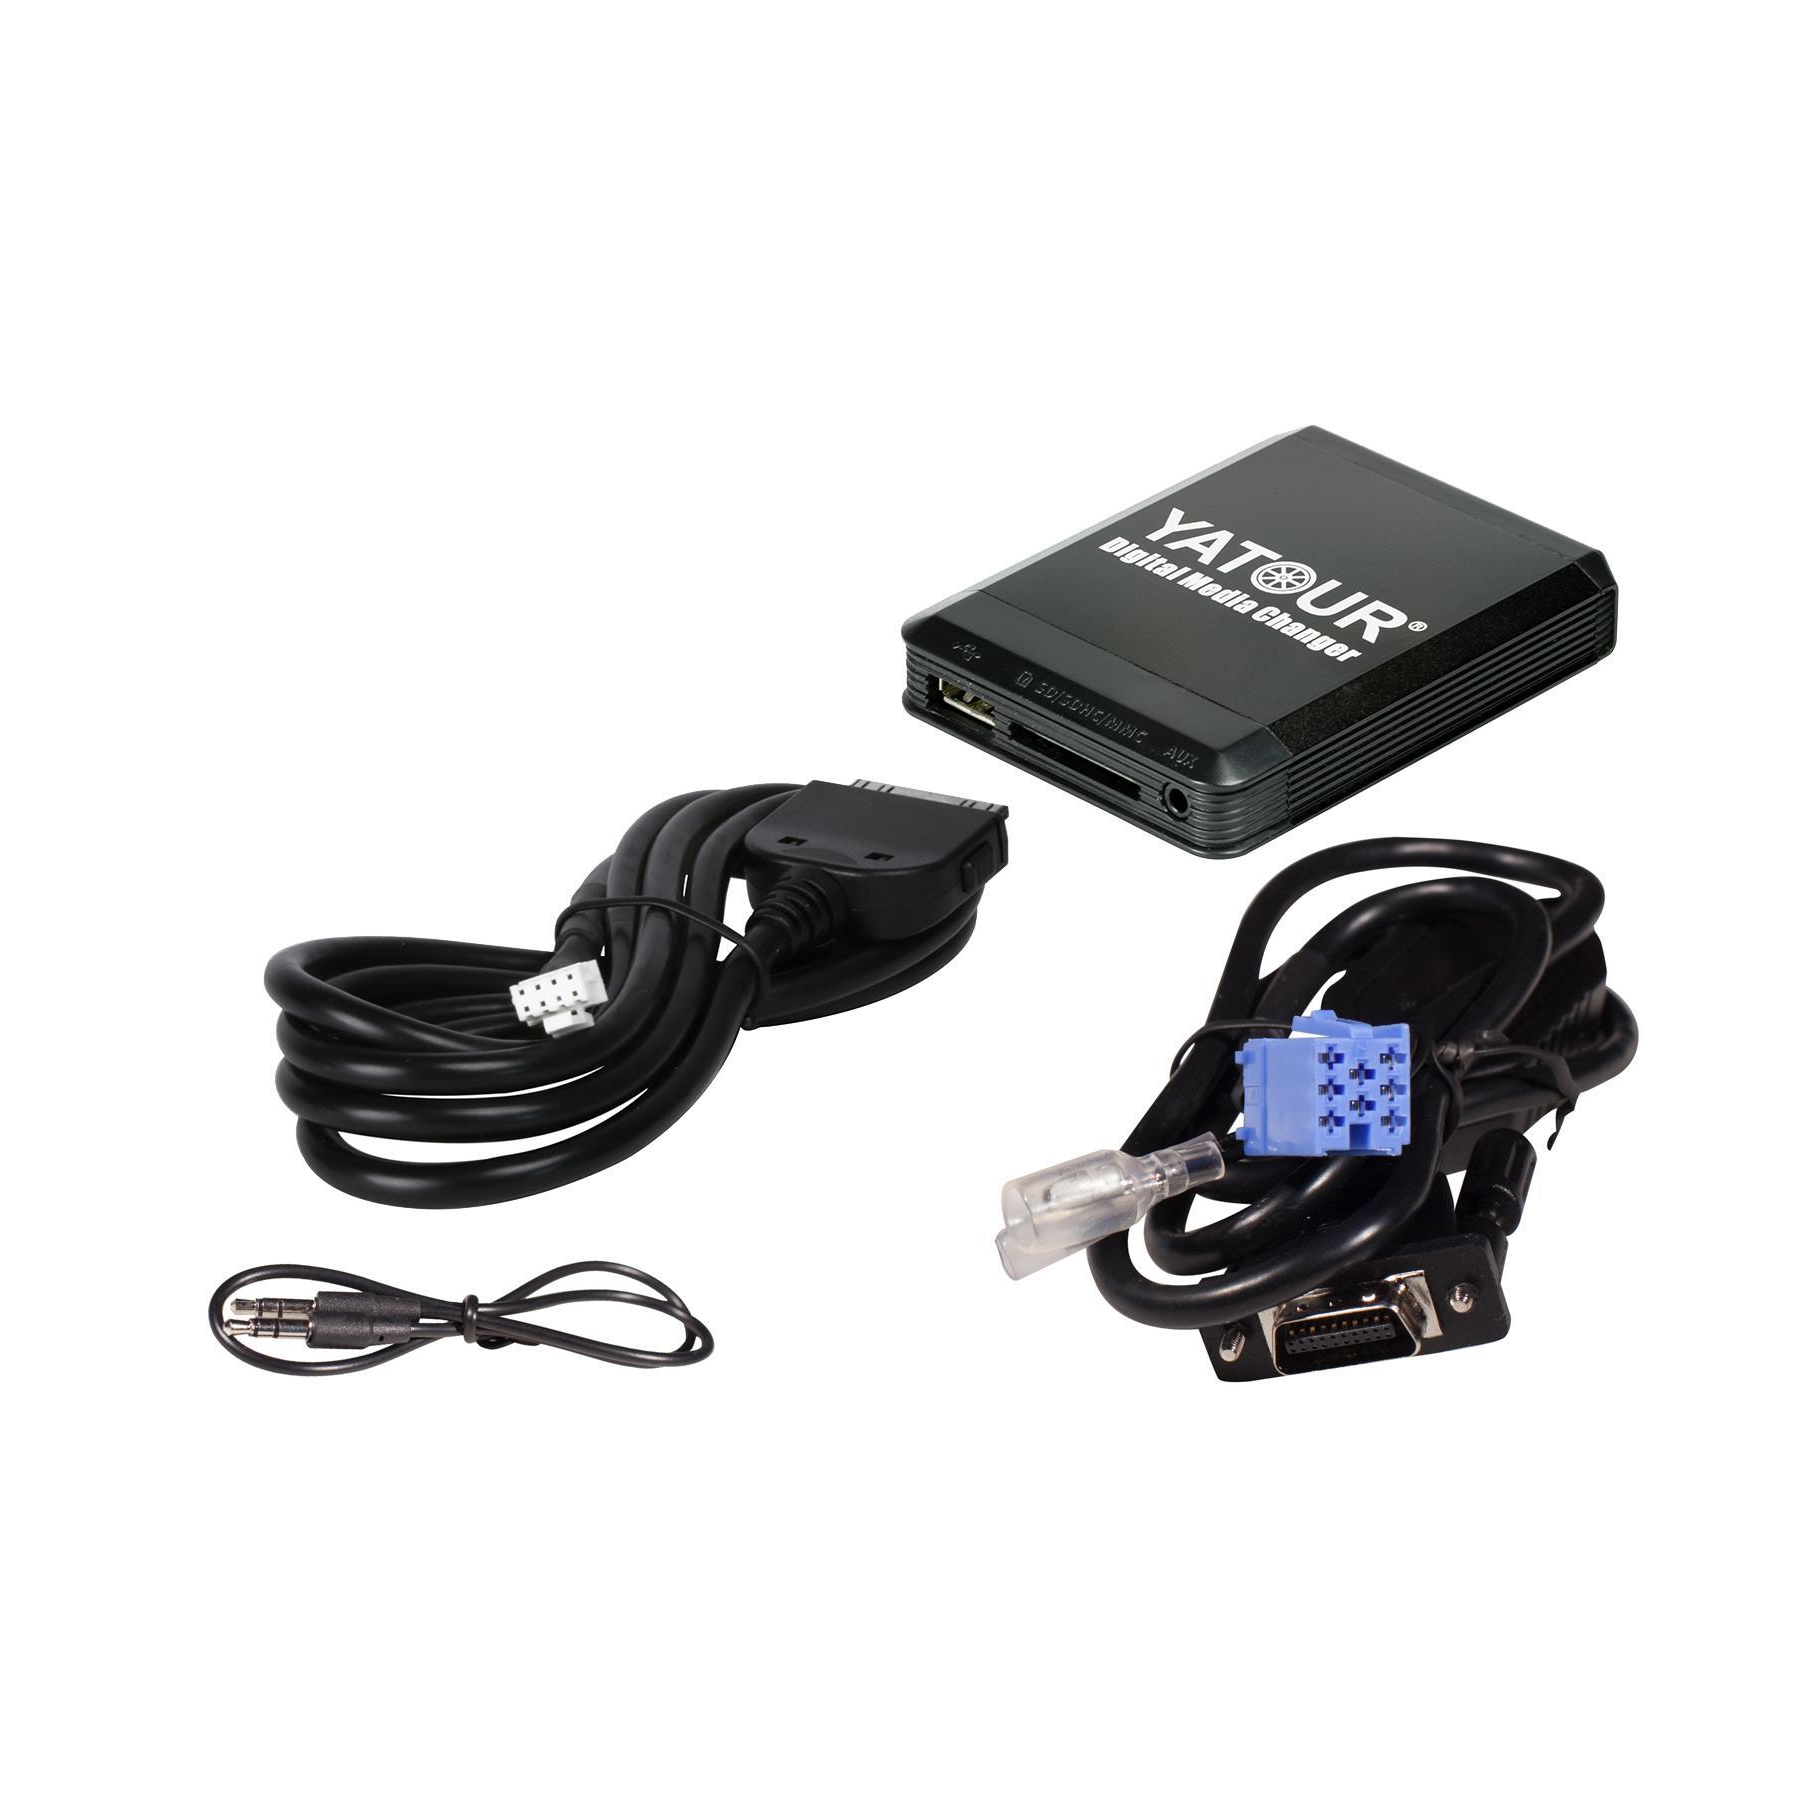 Yatour USB SD iPhone iPod iPad AUX Adapter + Bluetooth Peugeot Citroen RD3 Radios